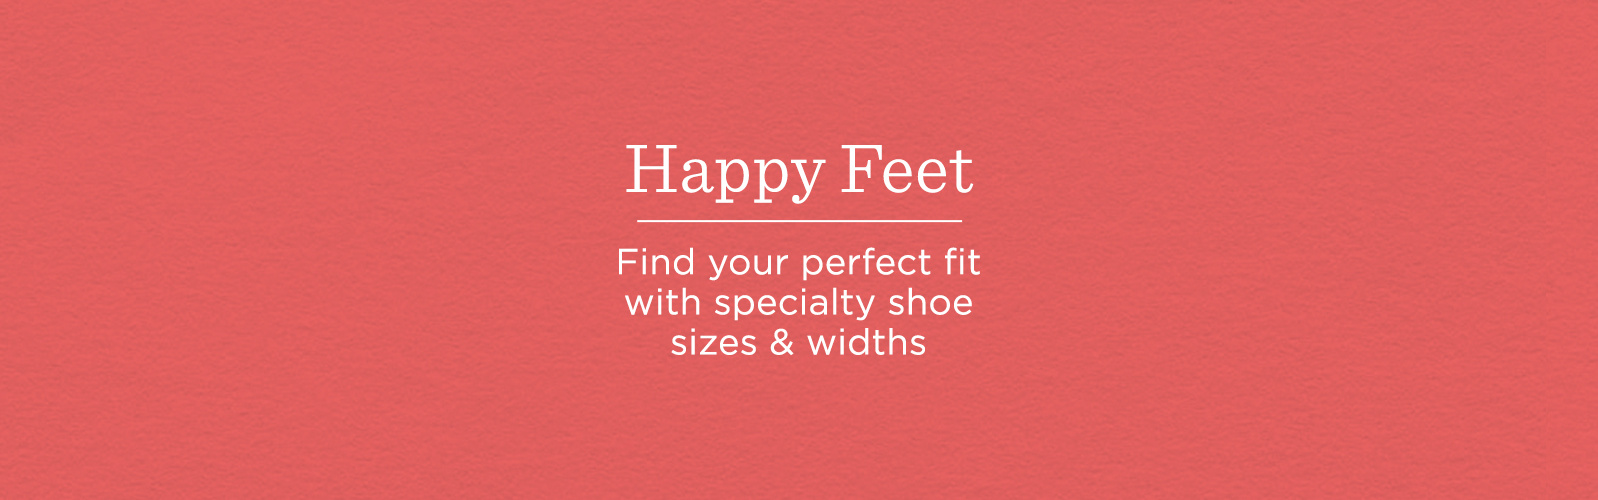 Happy Feet. Find your perfect fit with specialty shoe sizes & widths.